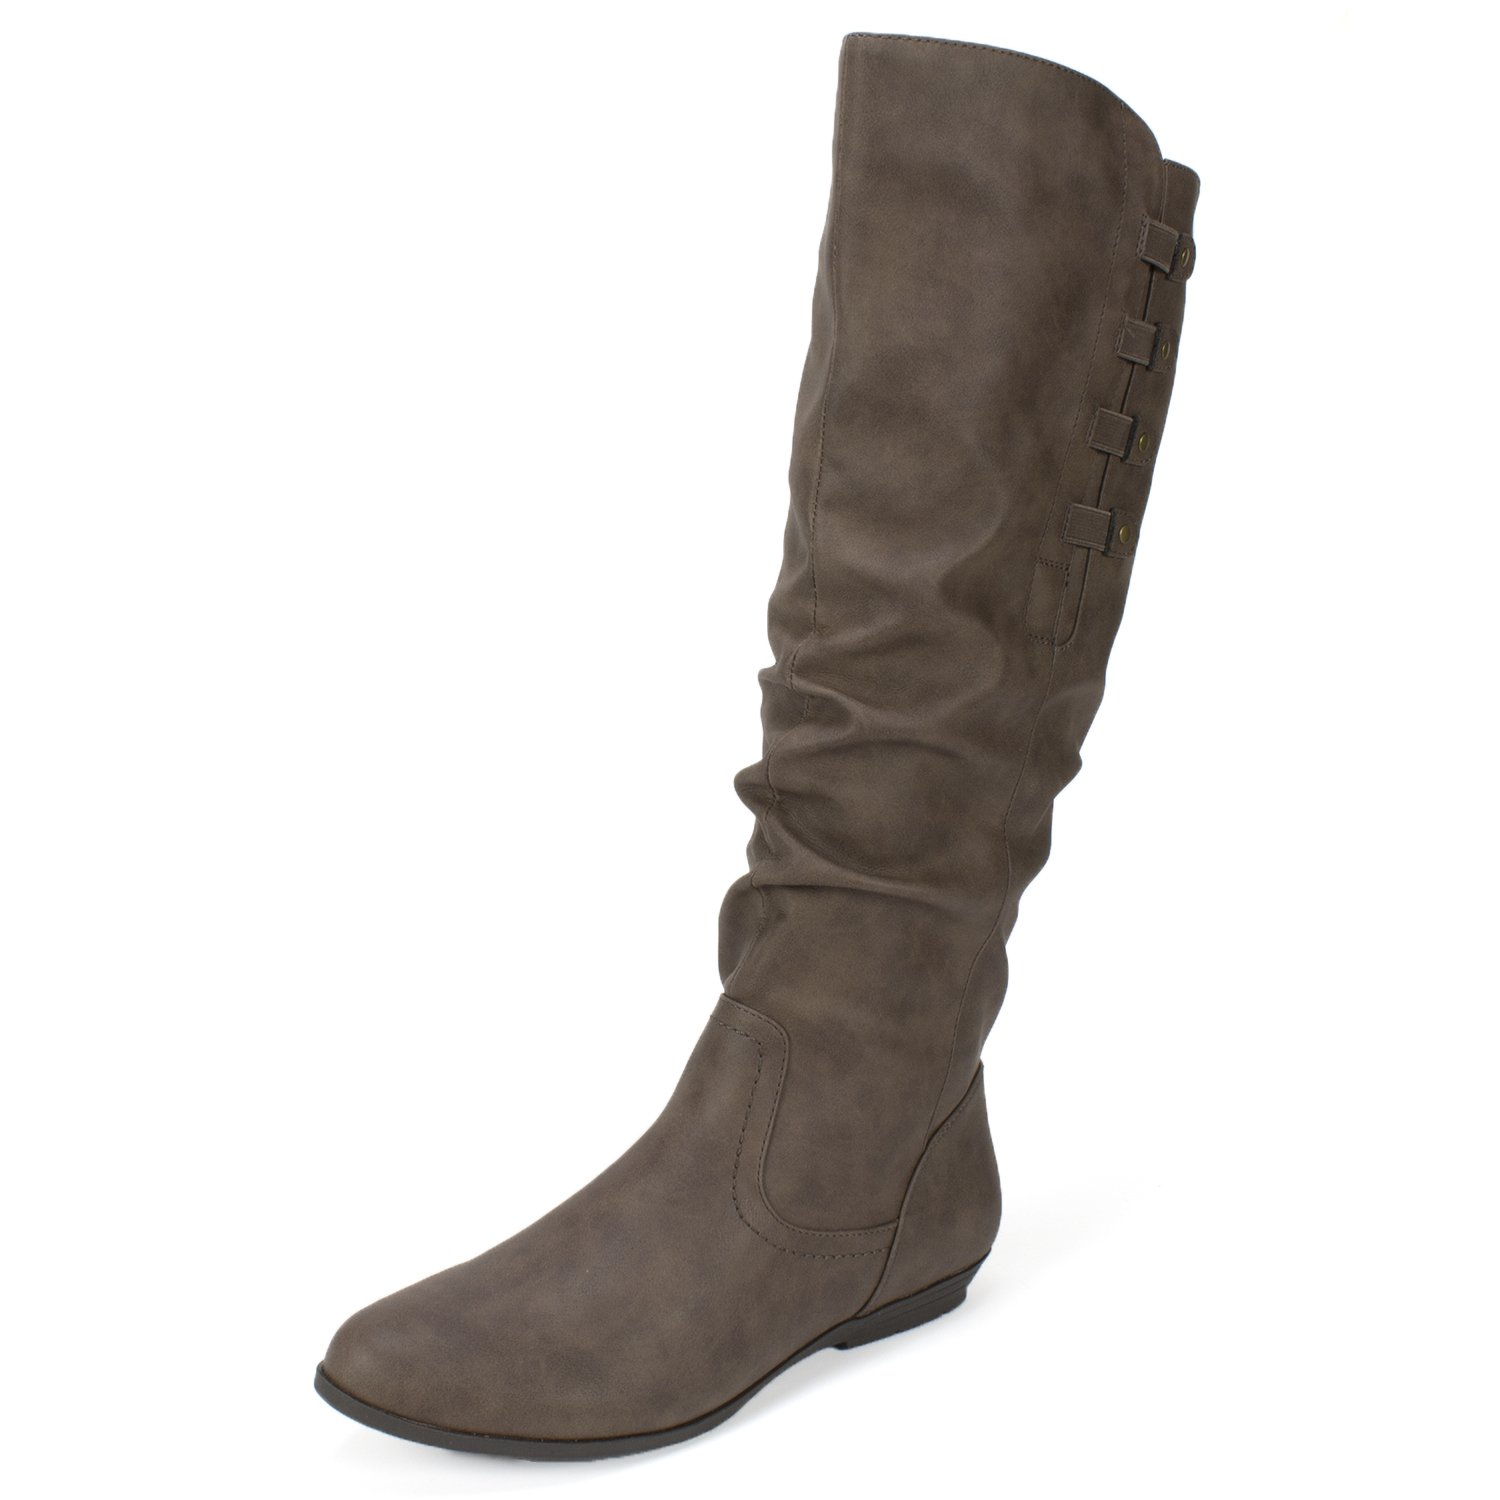 CLIFFS BY WHITE MOUNTAIN Cliffs 'Francie' Women's Boot B07581H3PF 8.5 B(M) US|Brown Suede